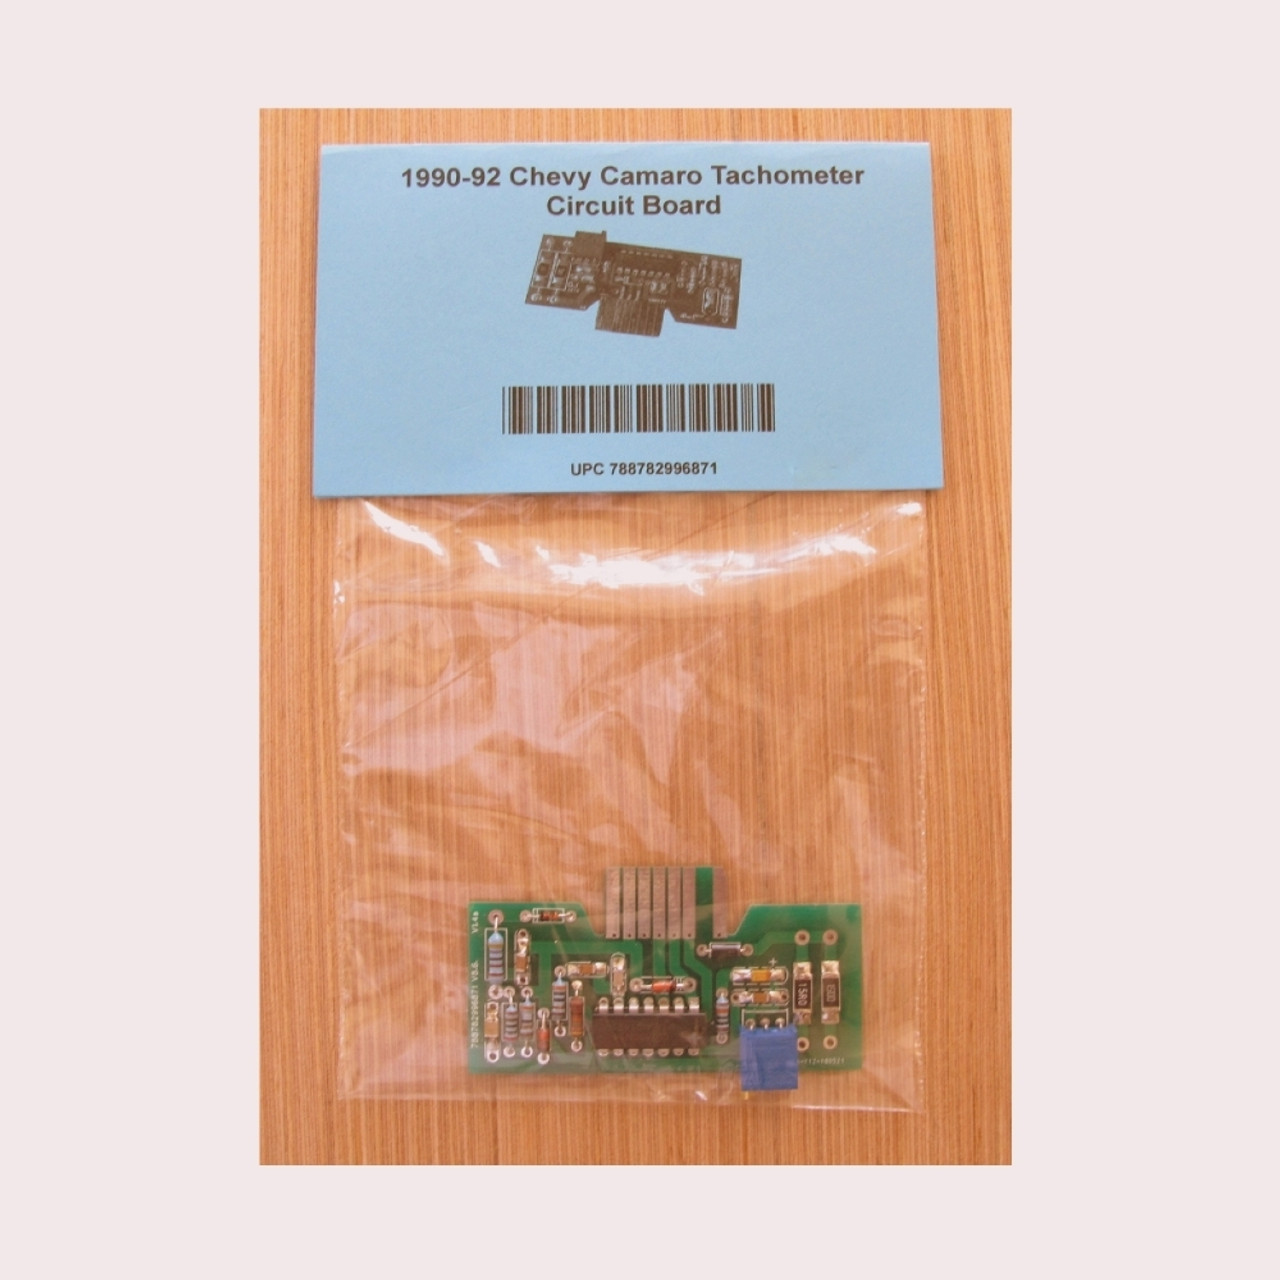 90 91 92 Chevy Camaro V6 Tachometer Circuit Board. LED's Pre-Calibrated. Direct replacement